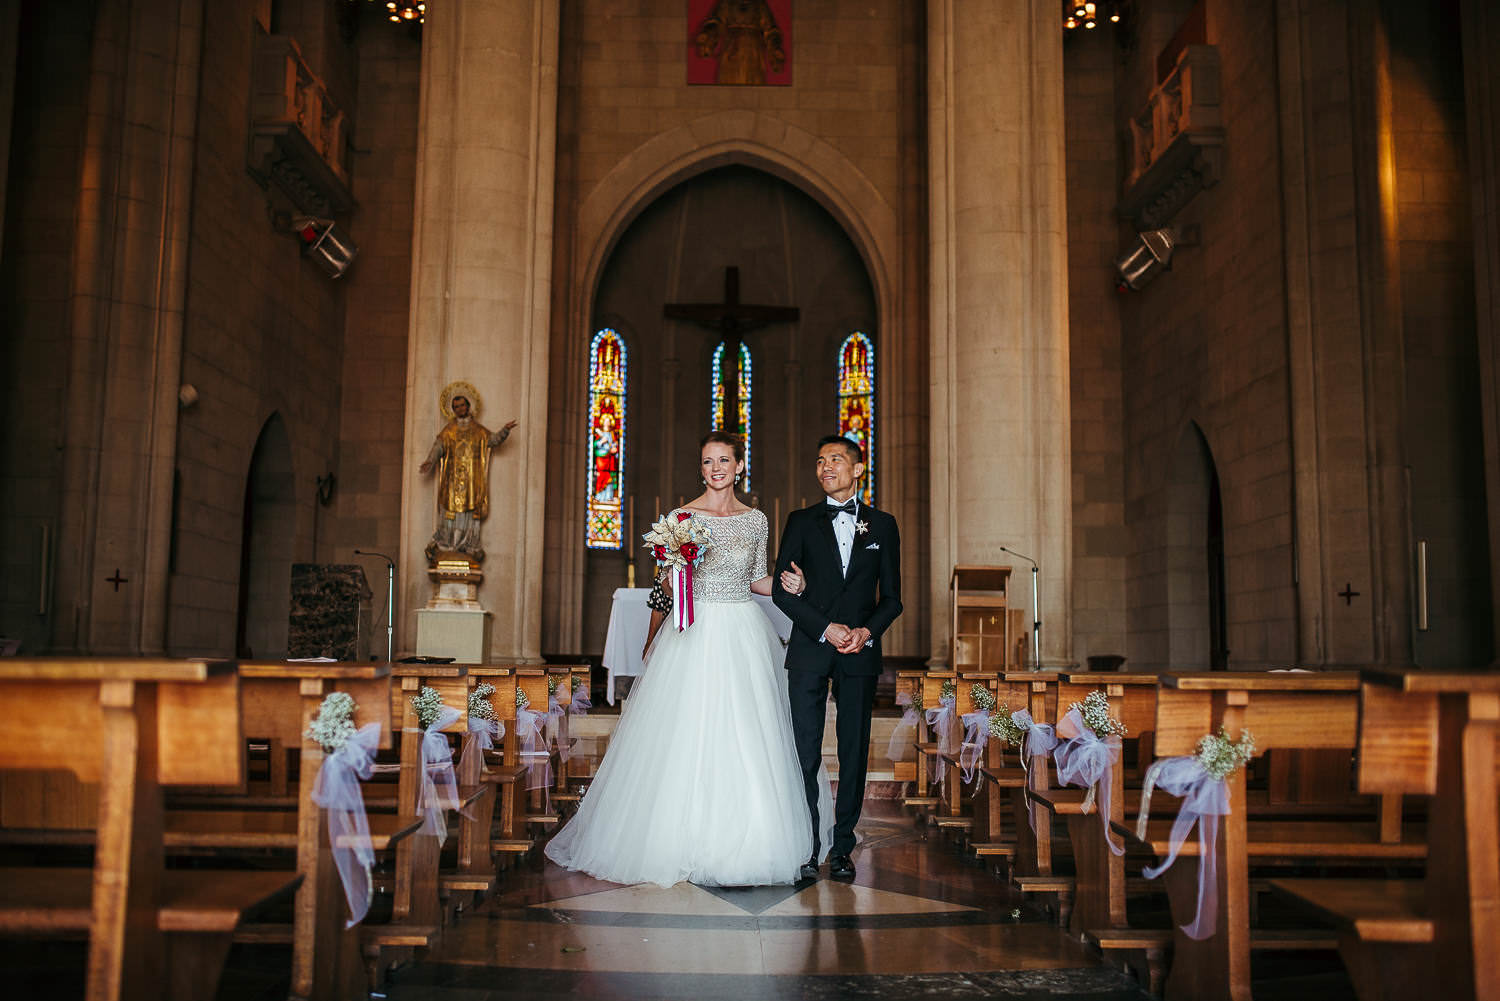 Barcelona wedding photographer wedding ceremony tibidabo church